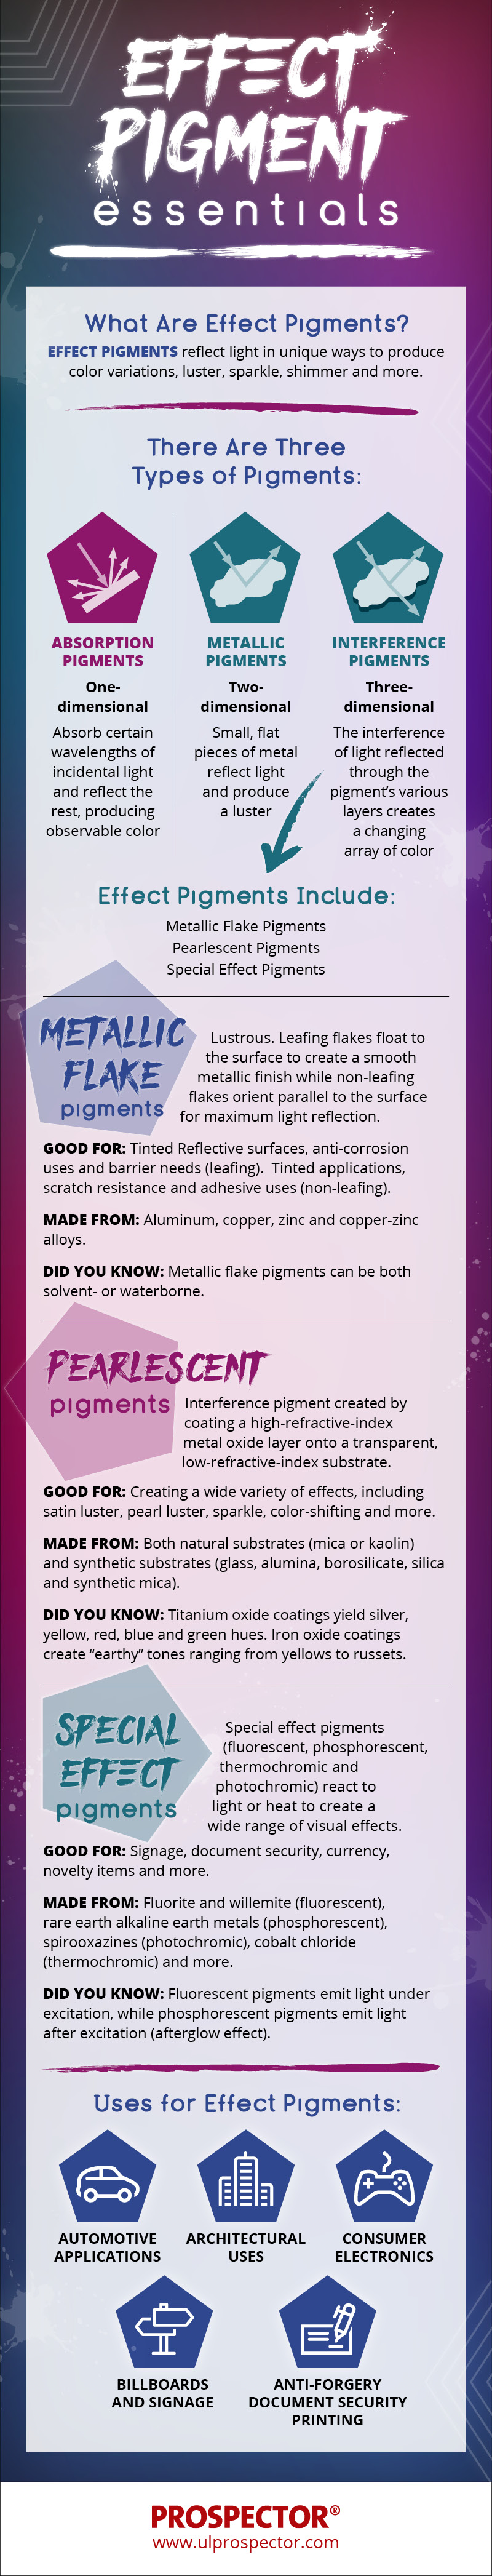 Learn about metallic flake, pearlescent and special effect pigments, & their uses in this infographic from the Prospector Knowledge Center.